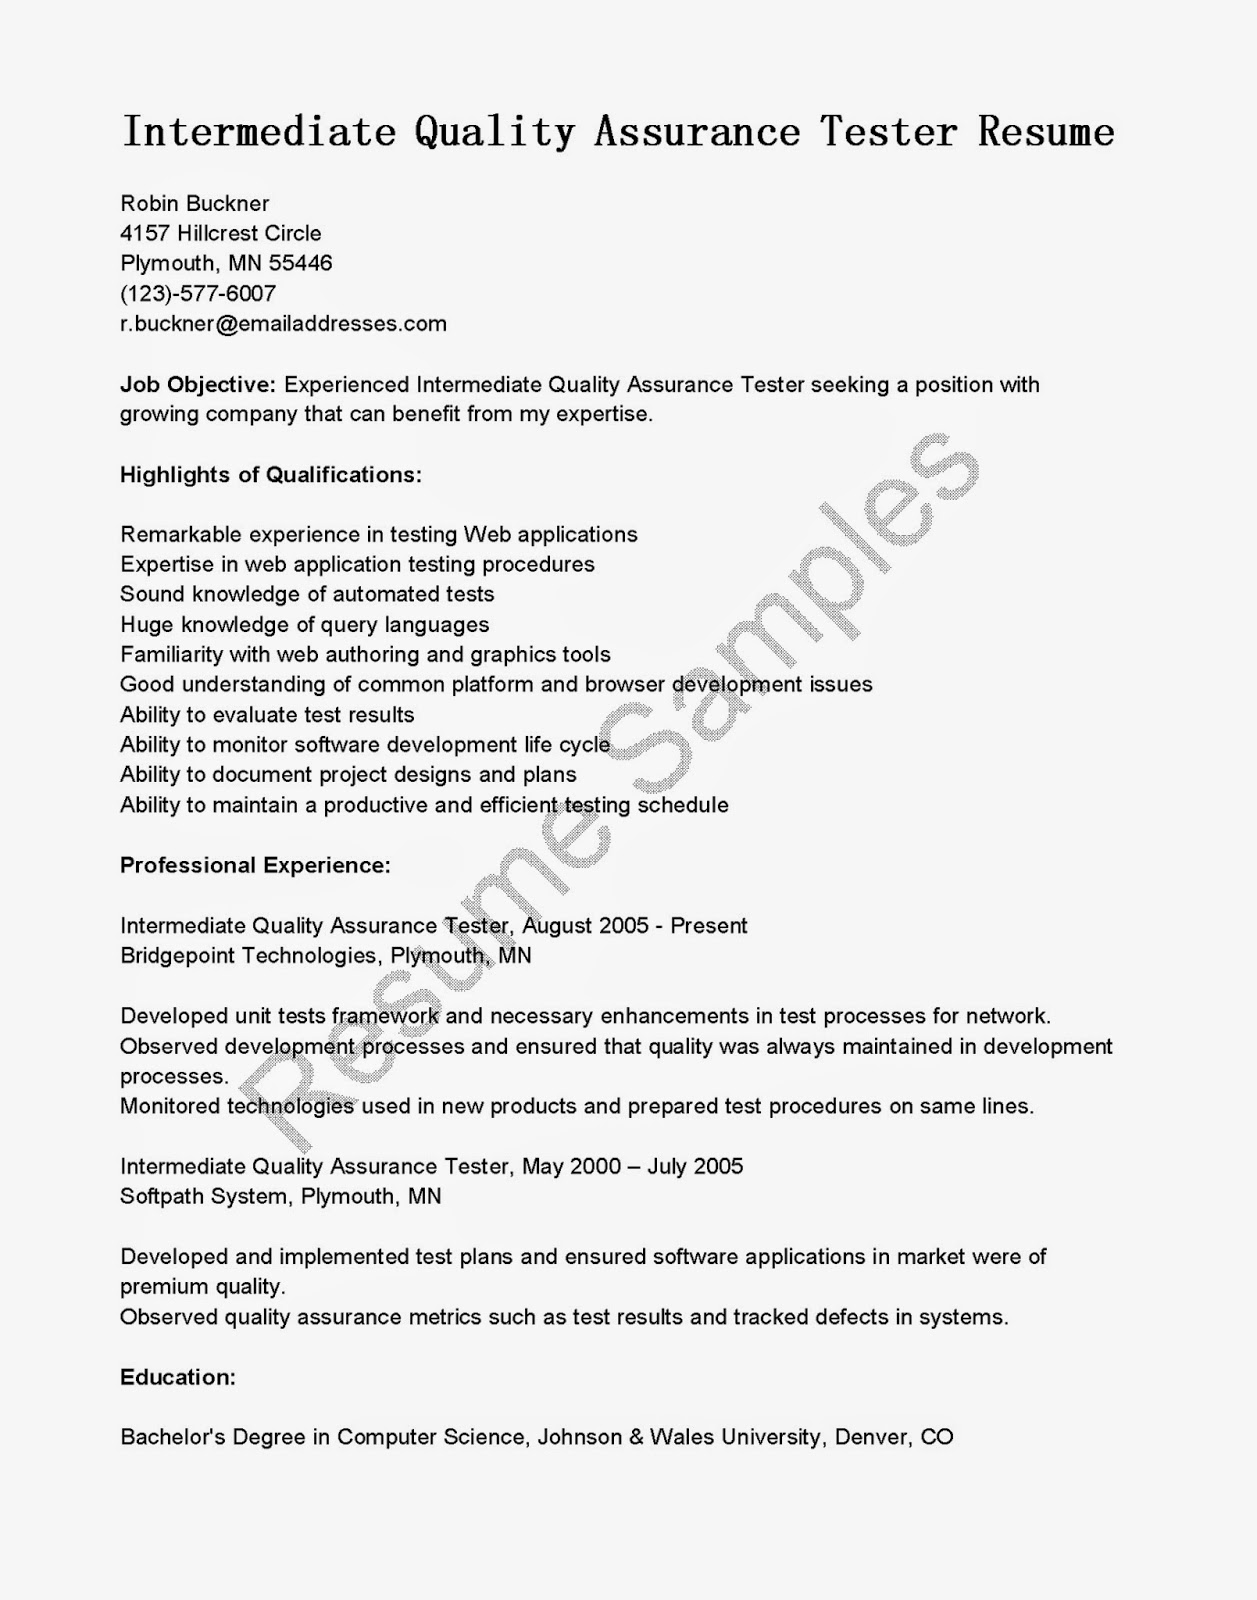 information technology manager resume Executive Resume Template Carpinteria  Rural Friedrich agile tester resume qa tester resume